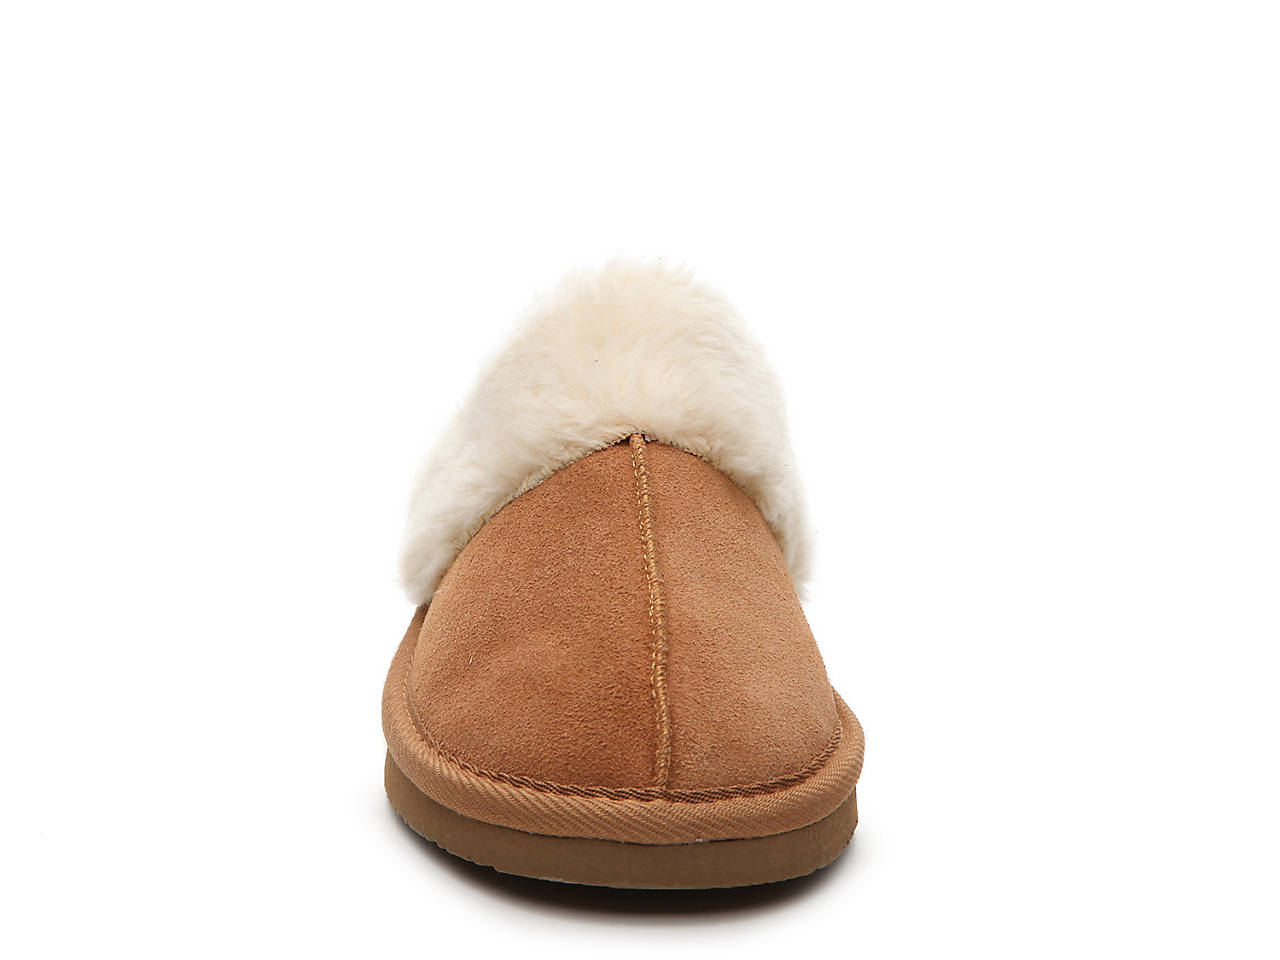 3358c995dac4f Minnetonka Chesney Slide Slipper Women s Shoes